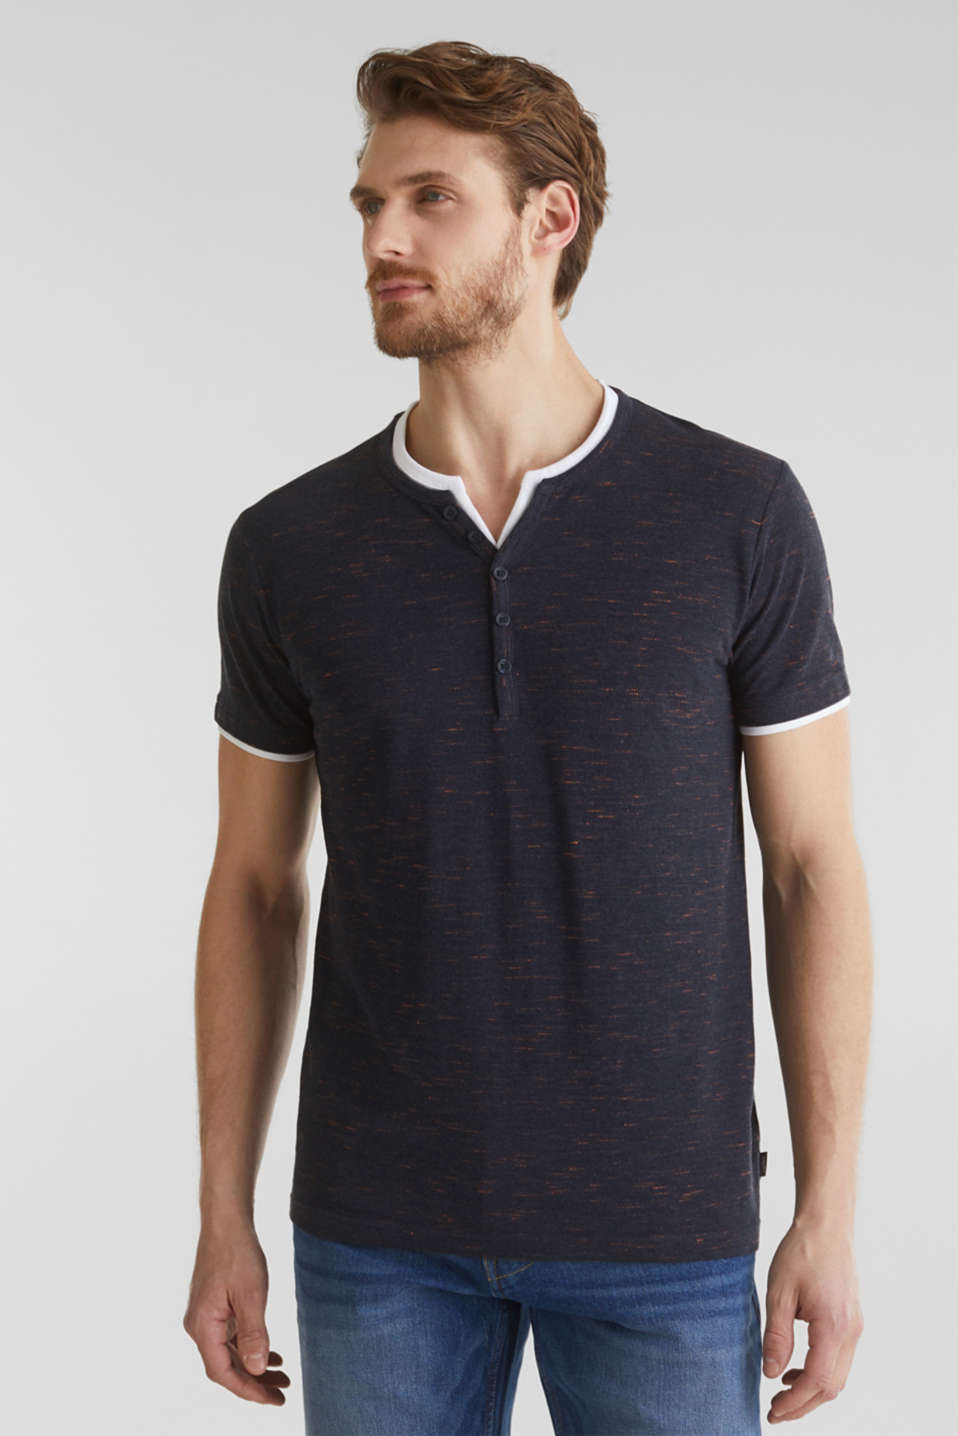 Piqué T-shirt in a layered look, NAVY 5, detail image number 0